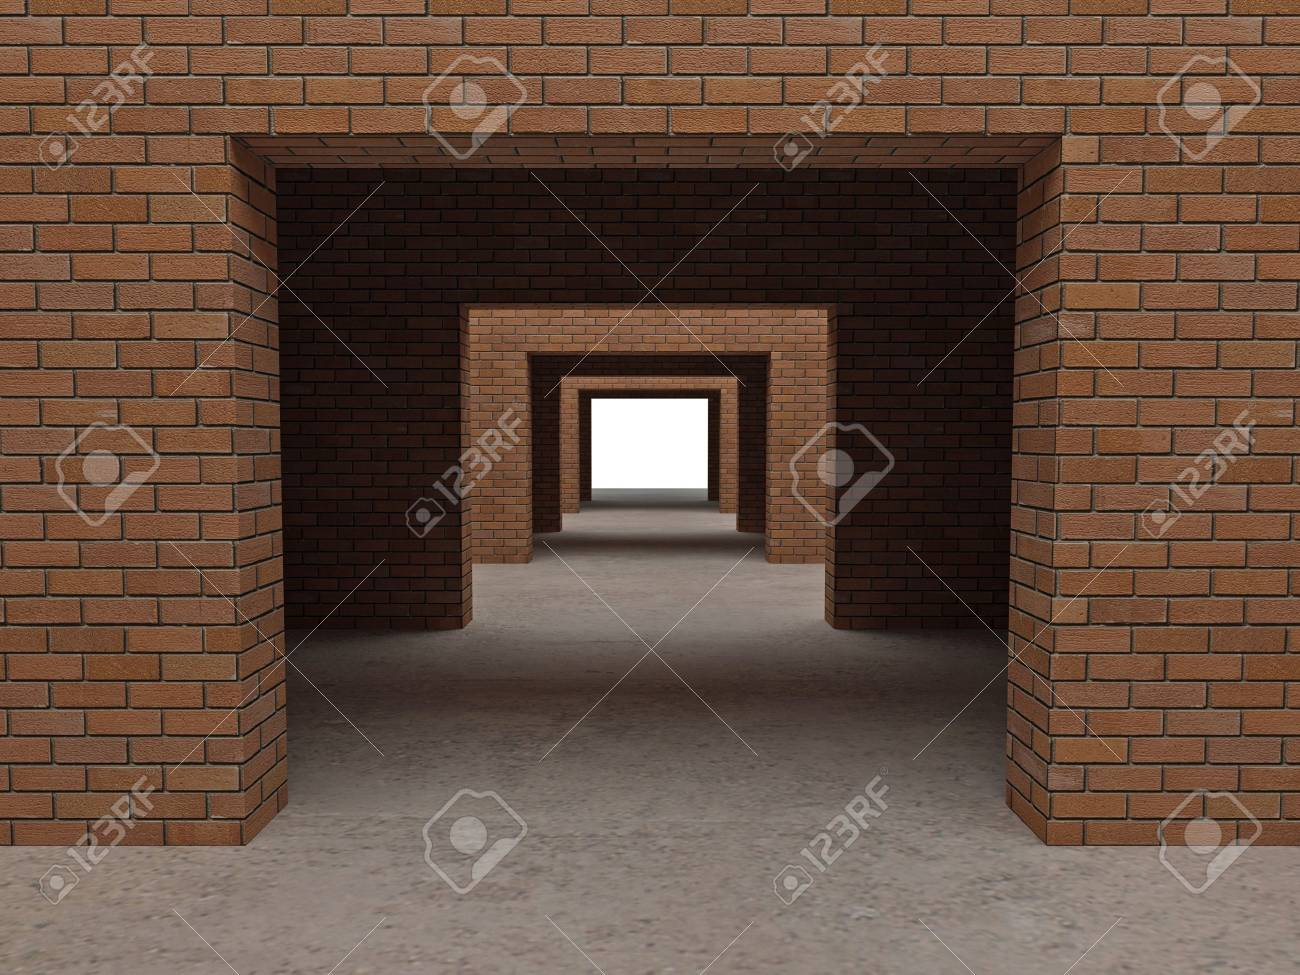 fine image 3d of modern brick building Stock Photo - 3947123